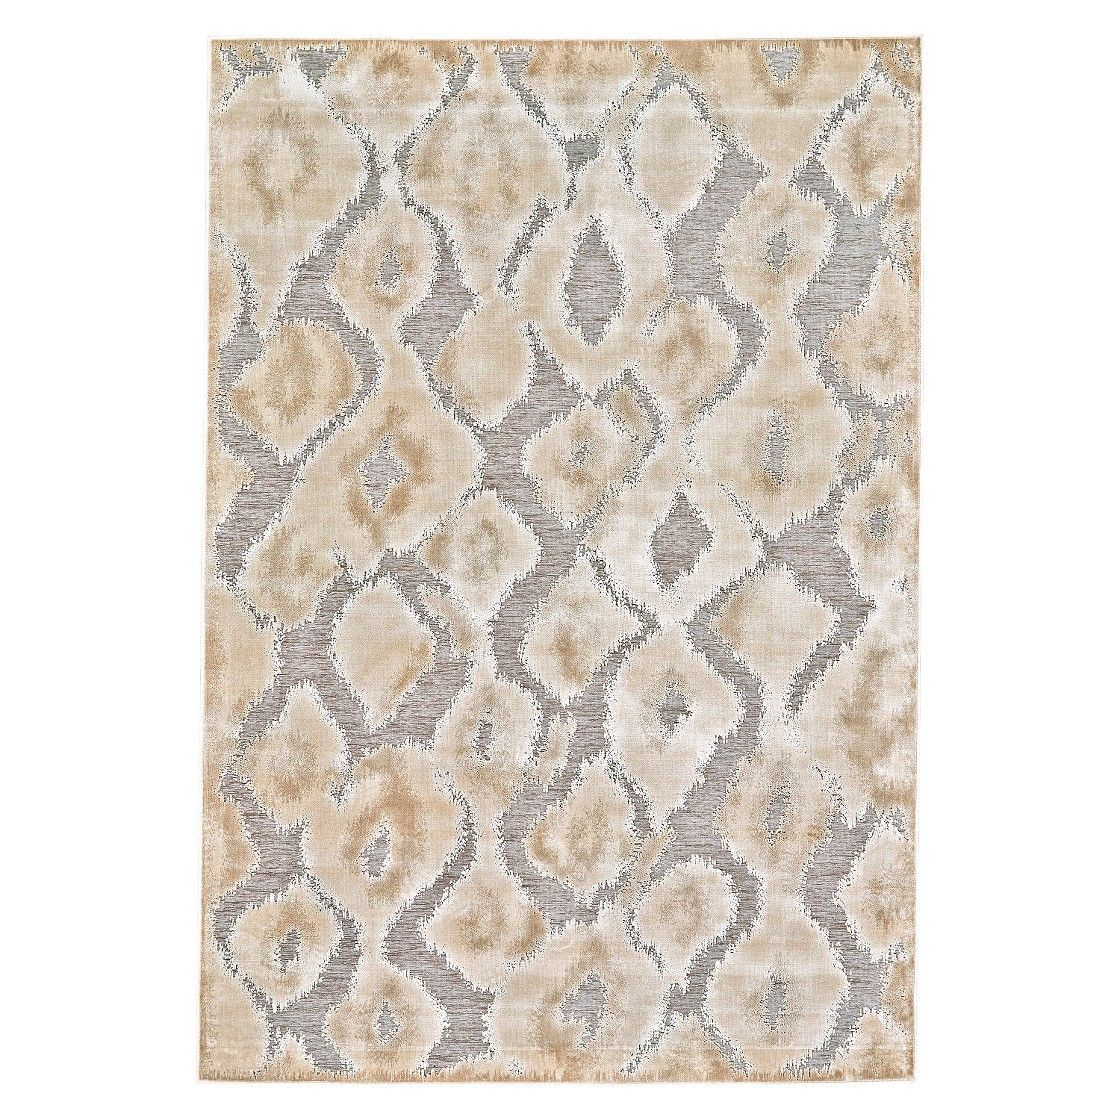 7 6 Quot X10 6 Quot Animal Print Woven Area Rugs Pewter Dark Gray